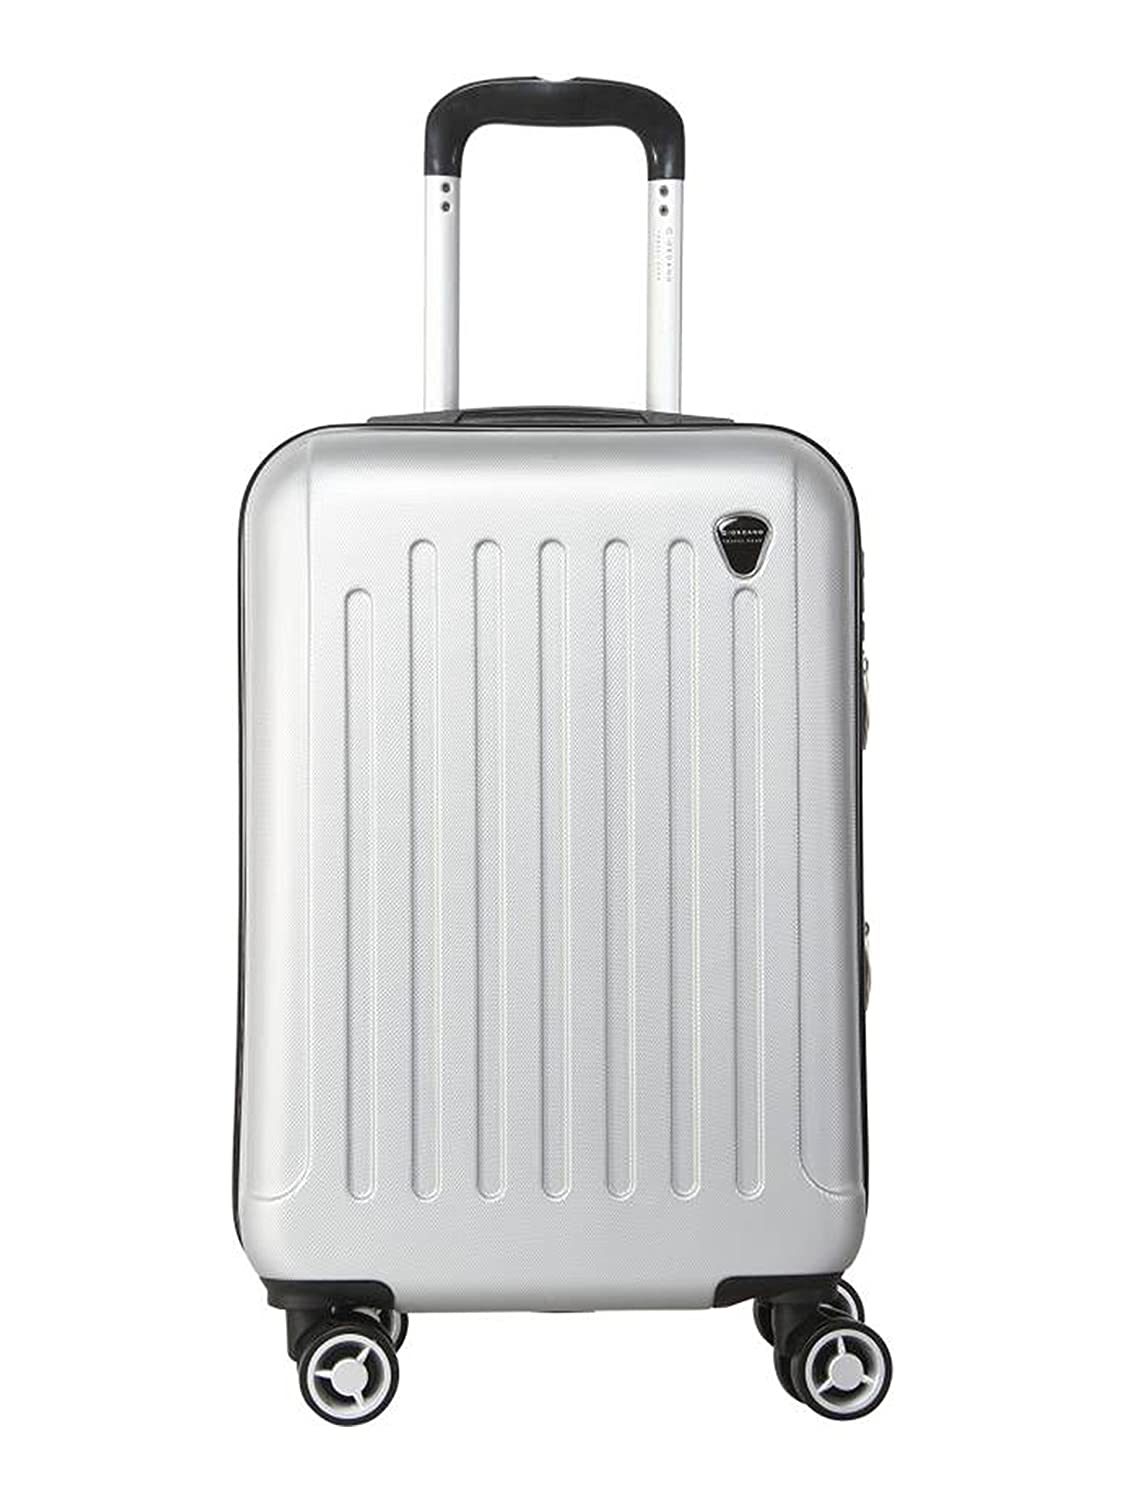 Giordano Polycarbonate 20 cms Silver Hardsided Check-in Luggage (ABS917-SL20)